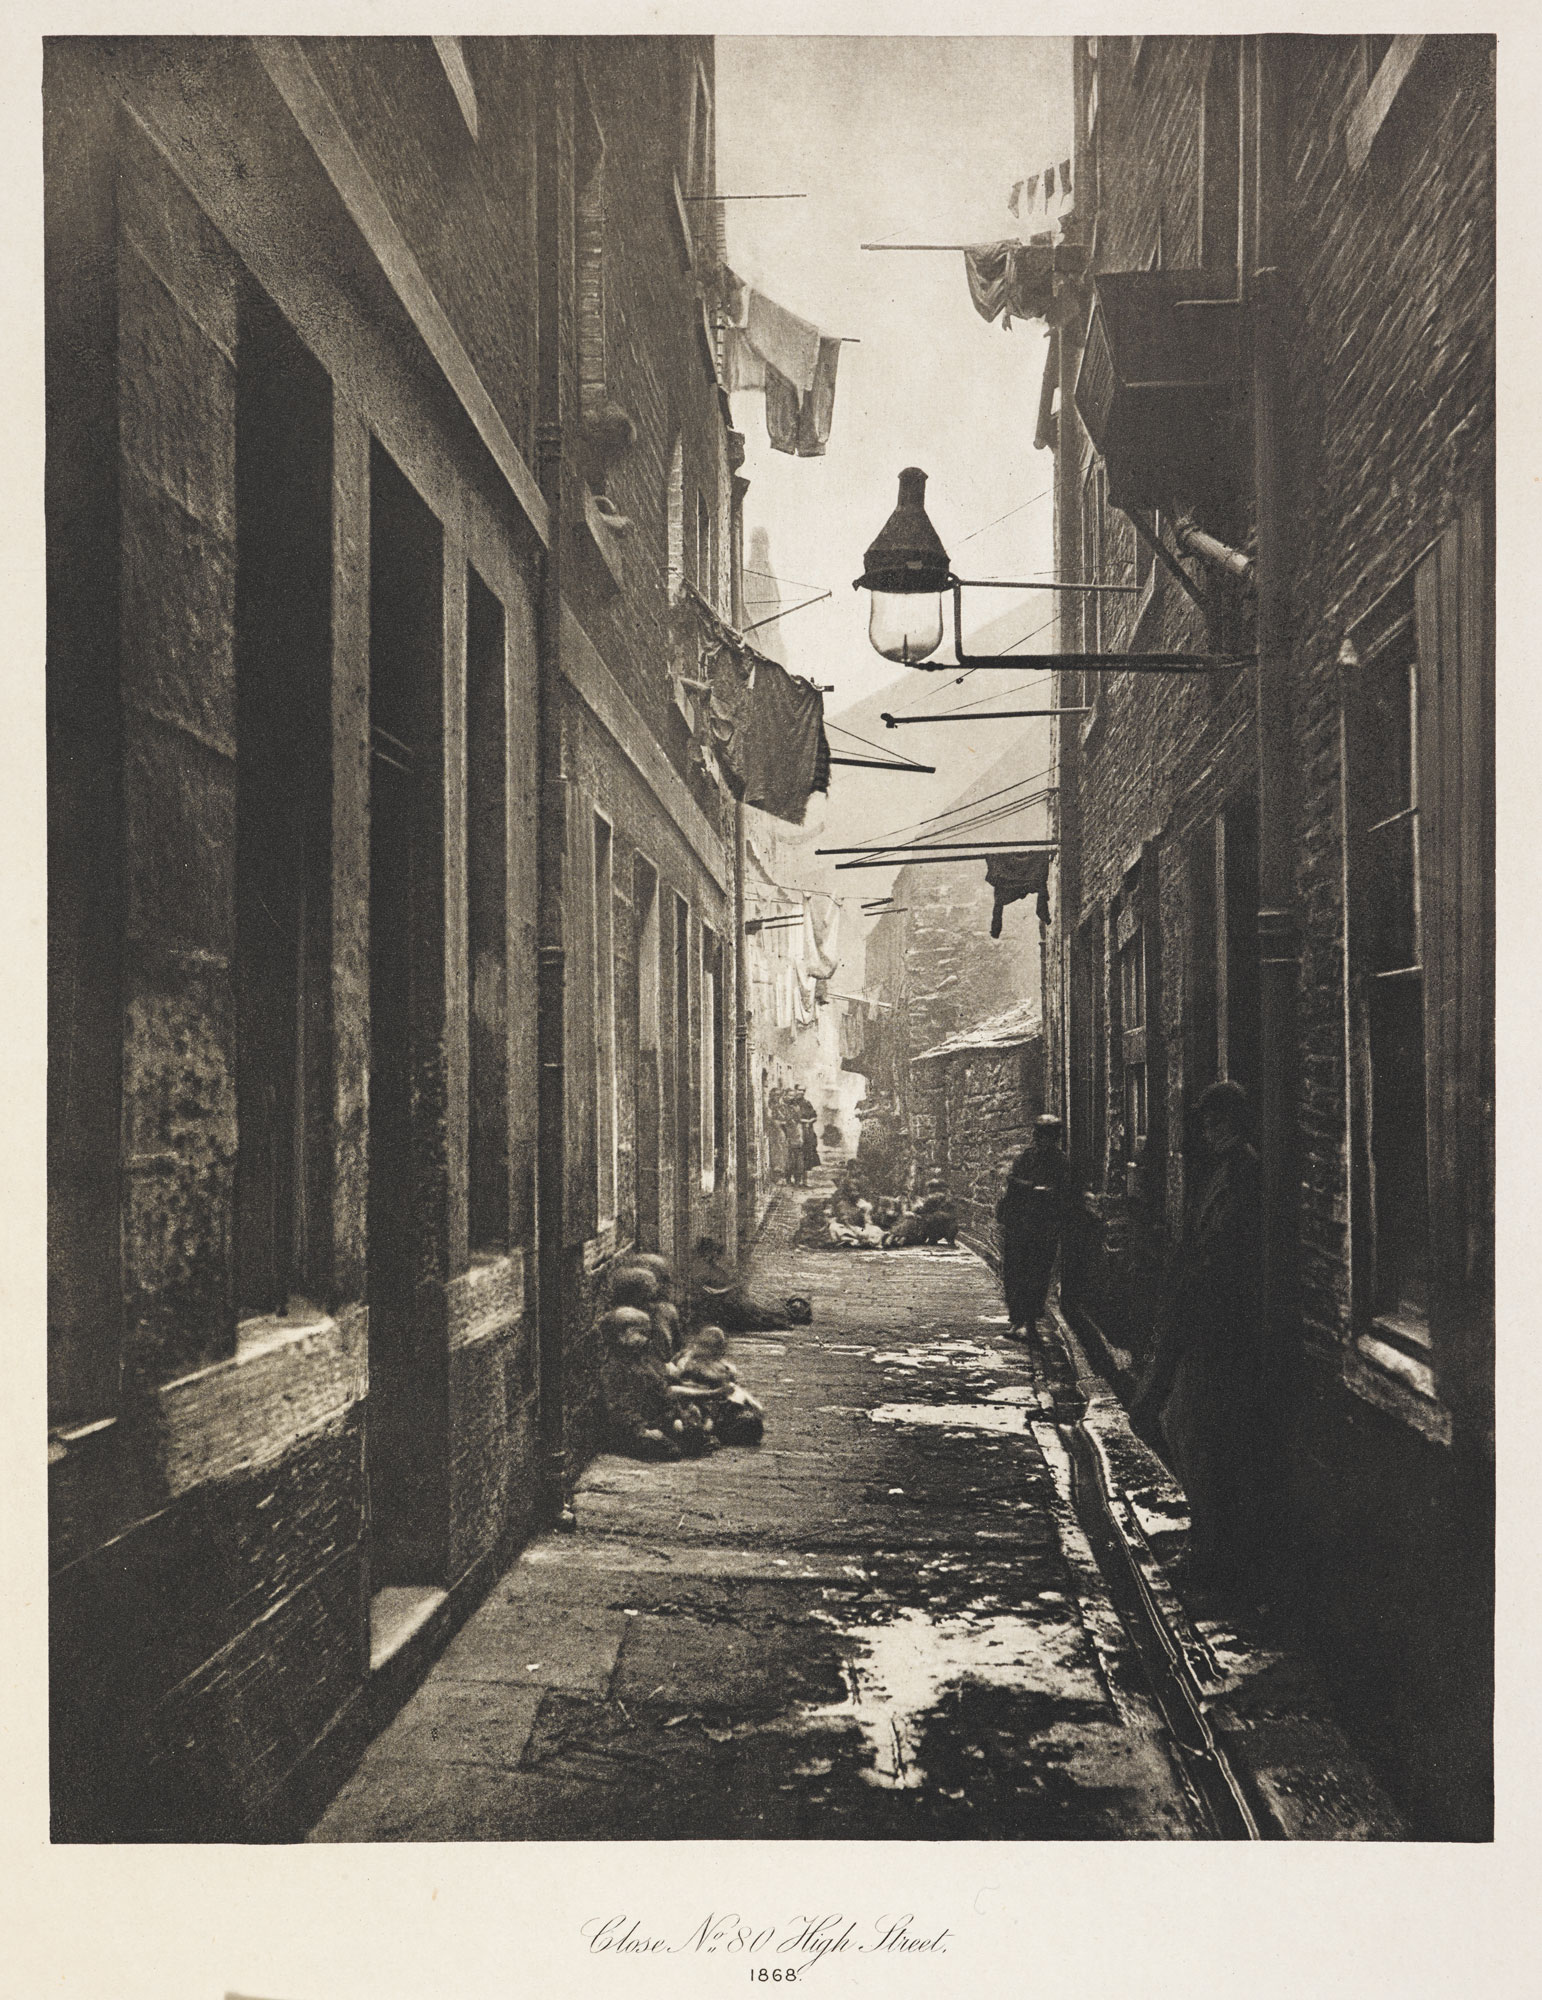 The Old Closes and Streets of Glasgow [page: [Close No. 80 High Street]]